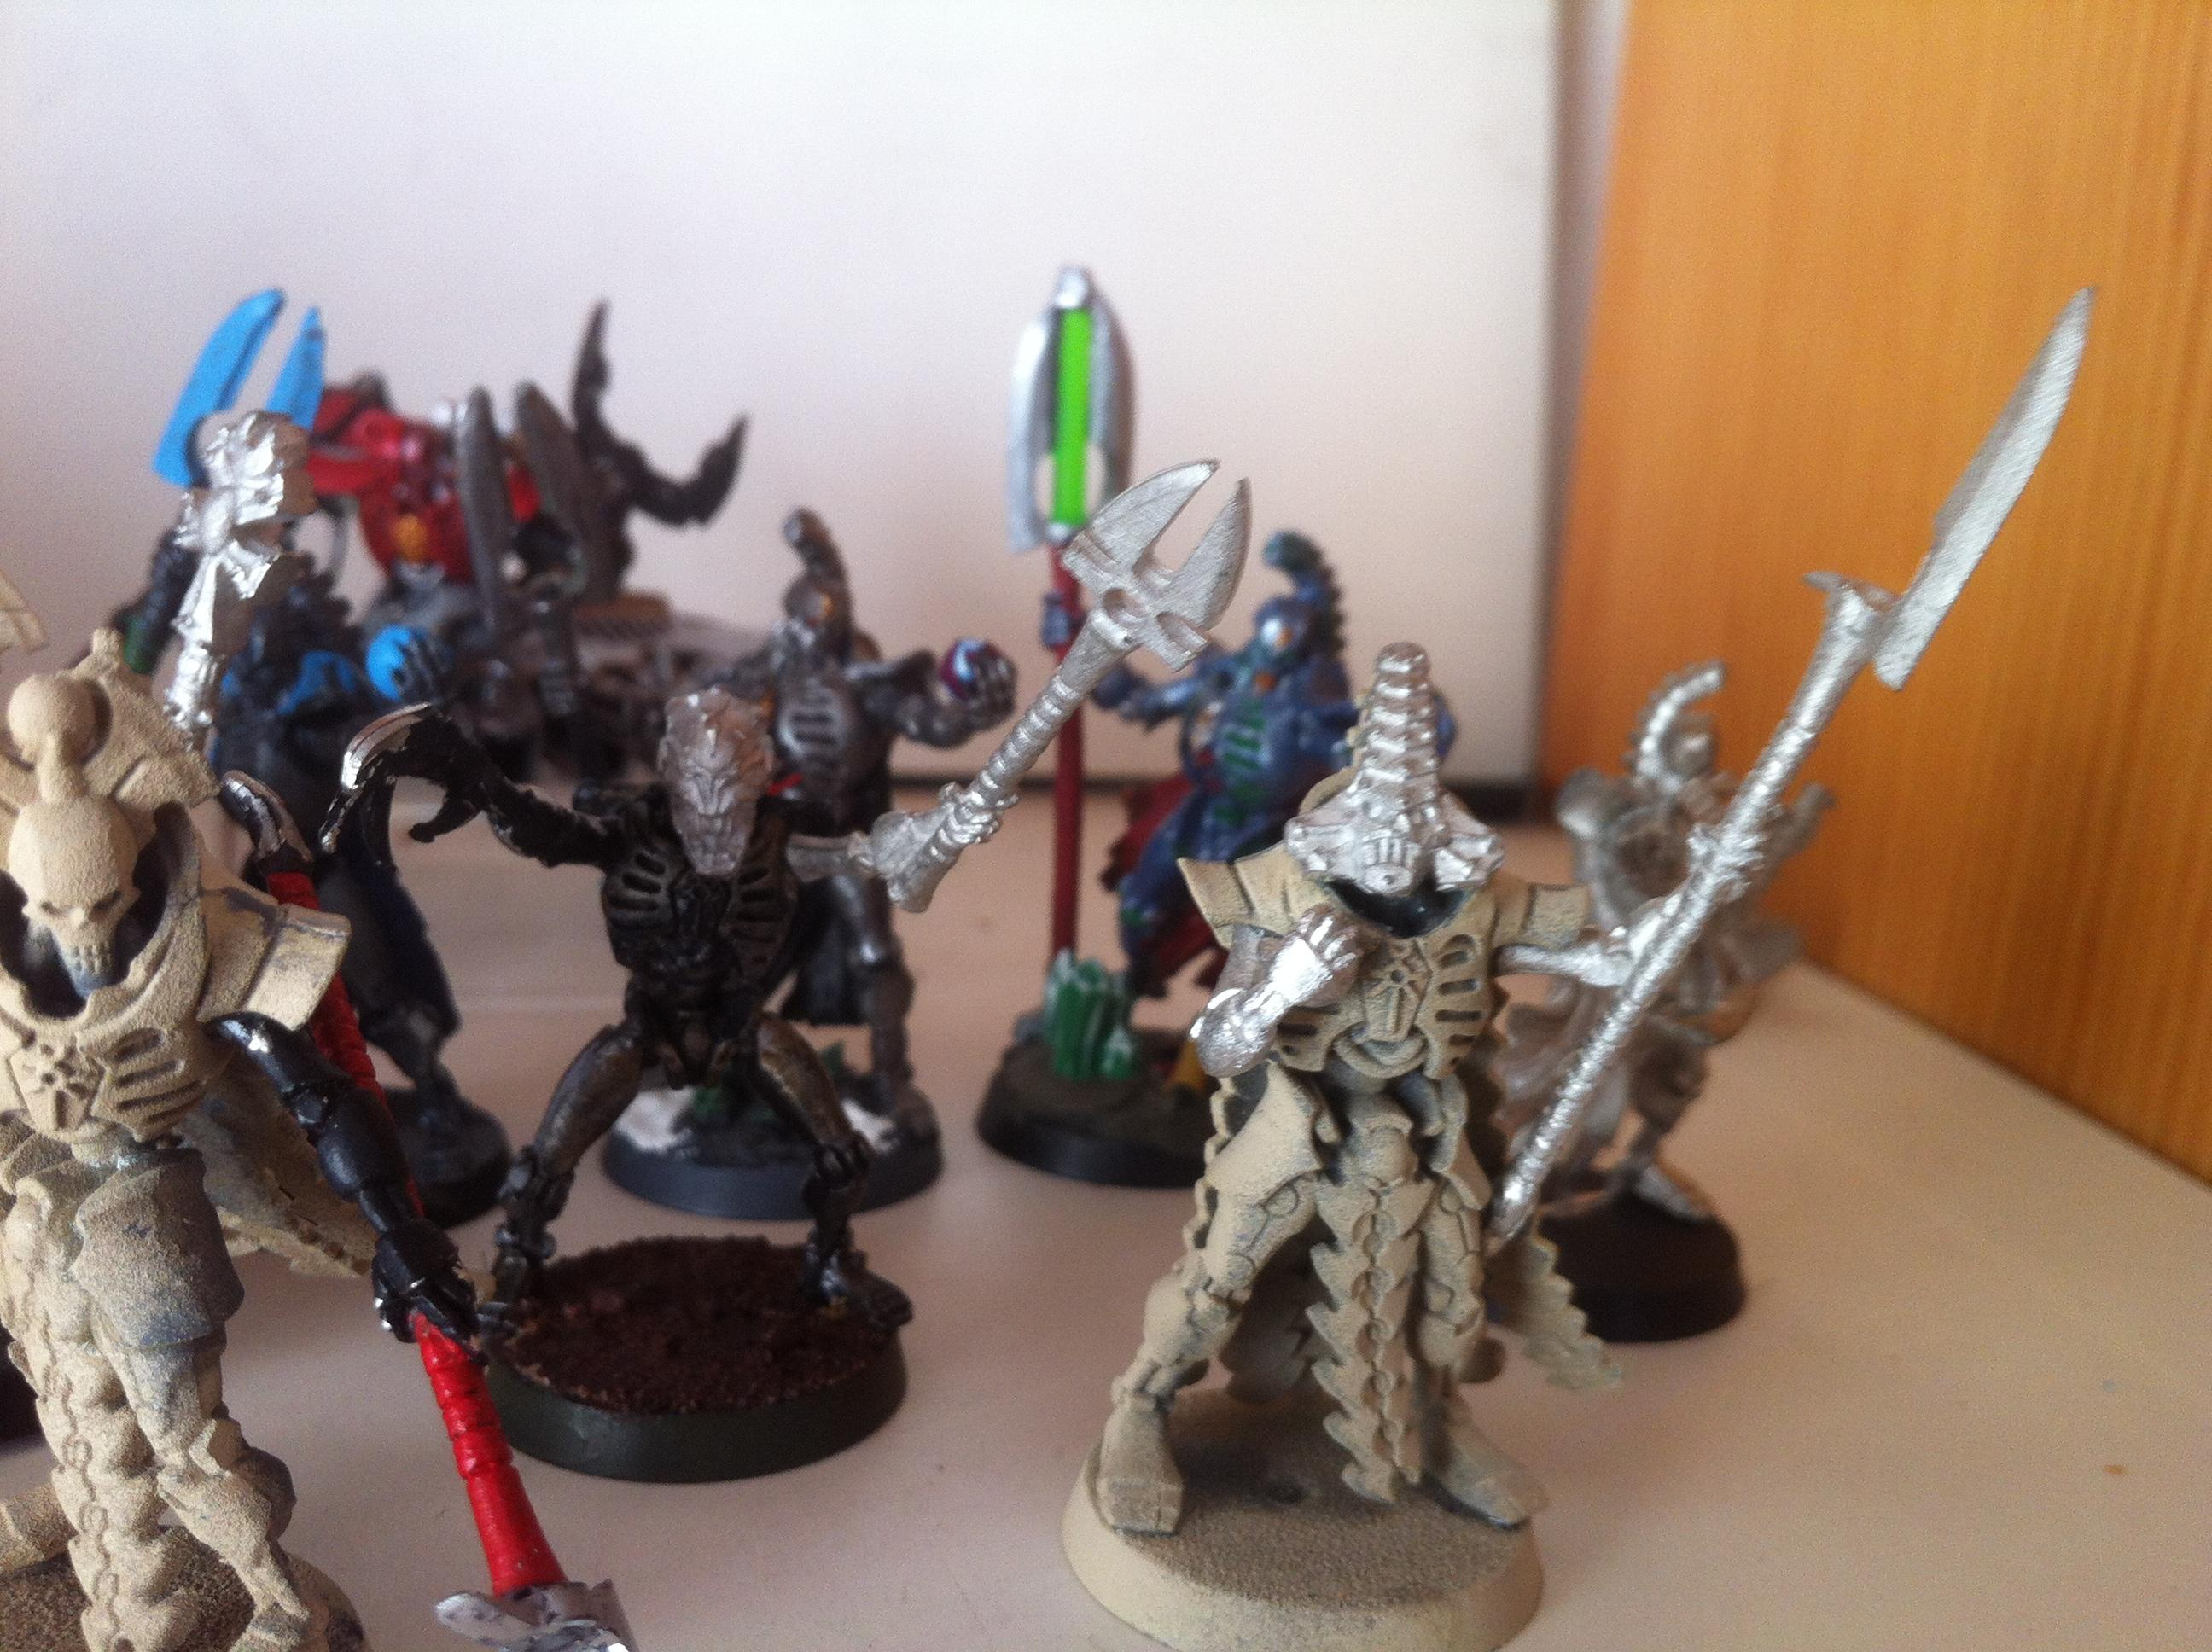 Conversion, Cool, Lich, Lord, Necrons, Old, Oldhammer, Options, Quest, Rogue, Star, Style, Trader, Variant